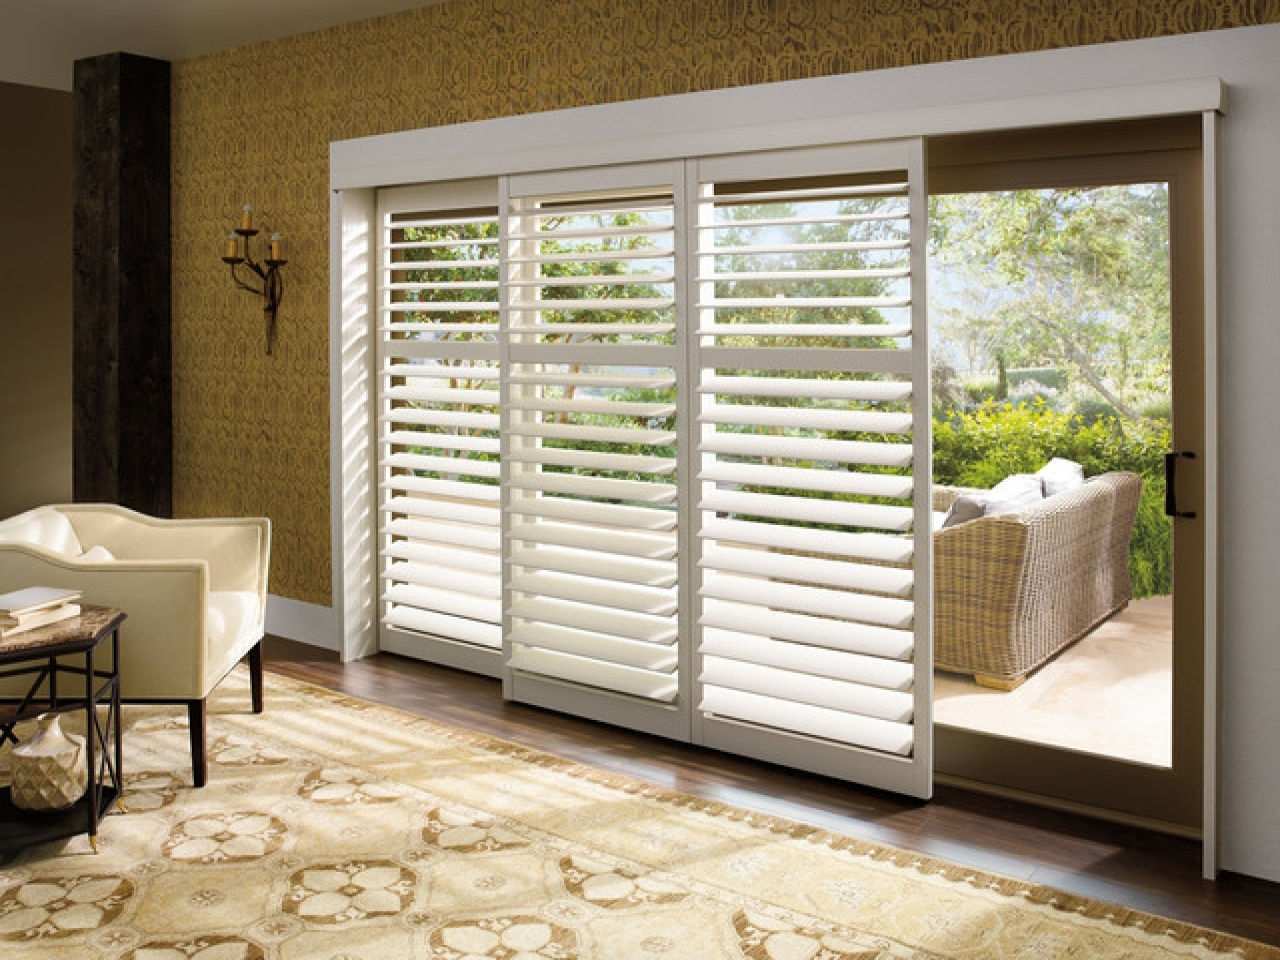 Sliding Glass Door Blinds And Shades1280 X 960